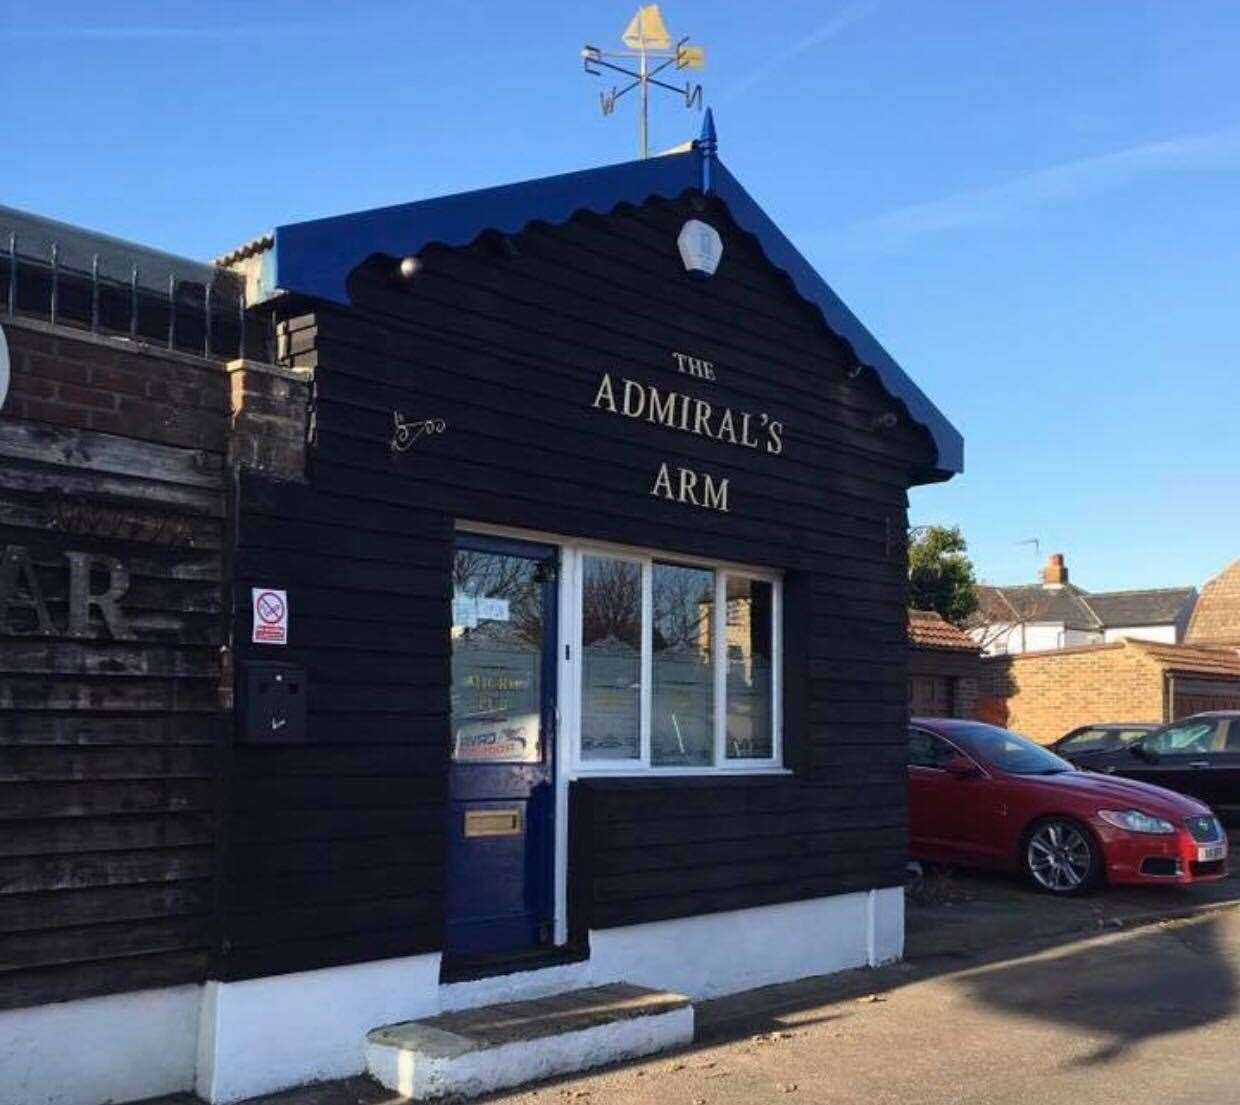 The Admiral's Arm in Trafalgar Square, Queenborough